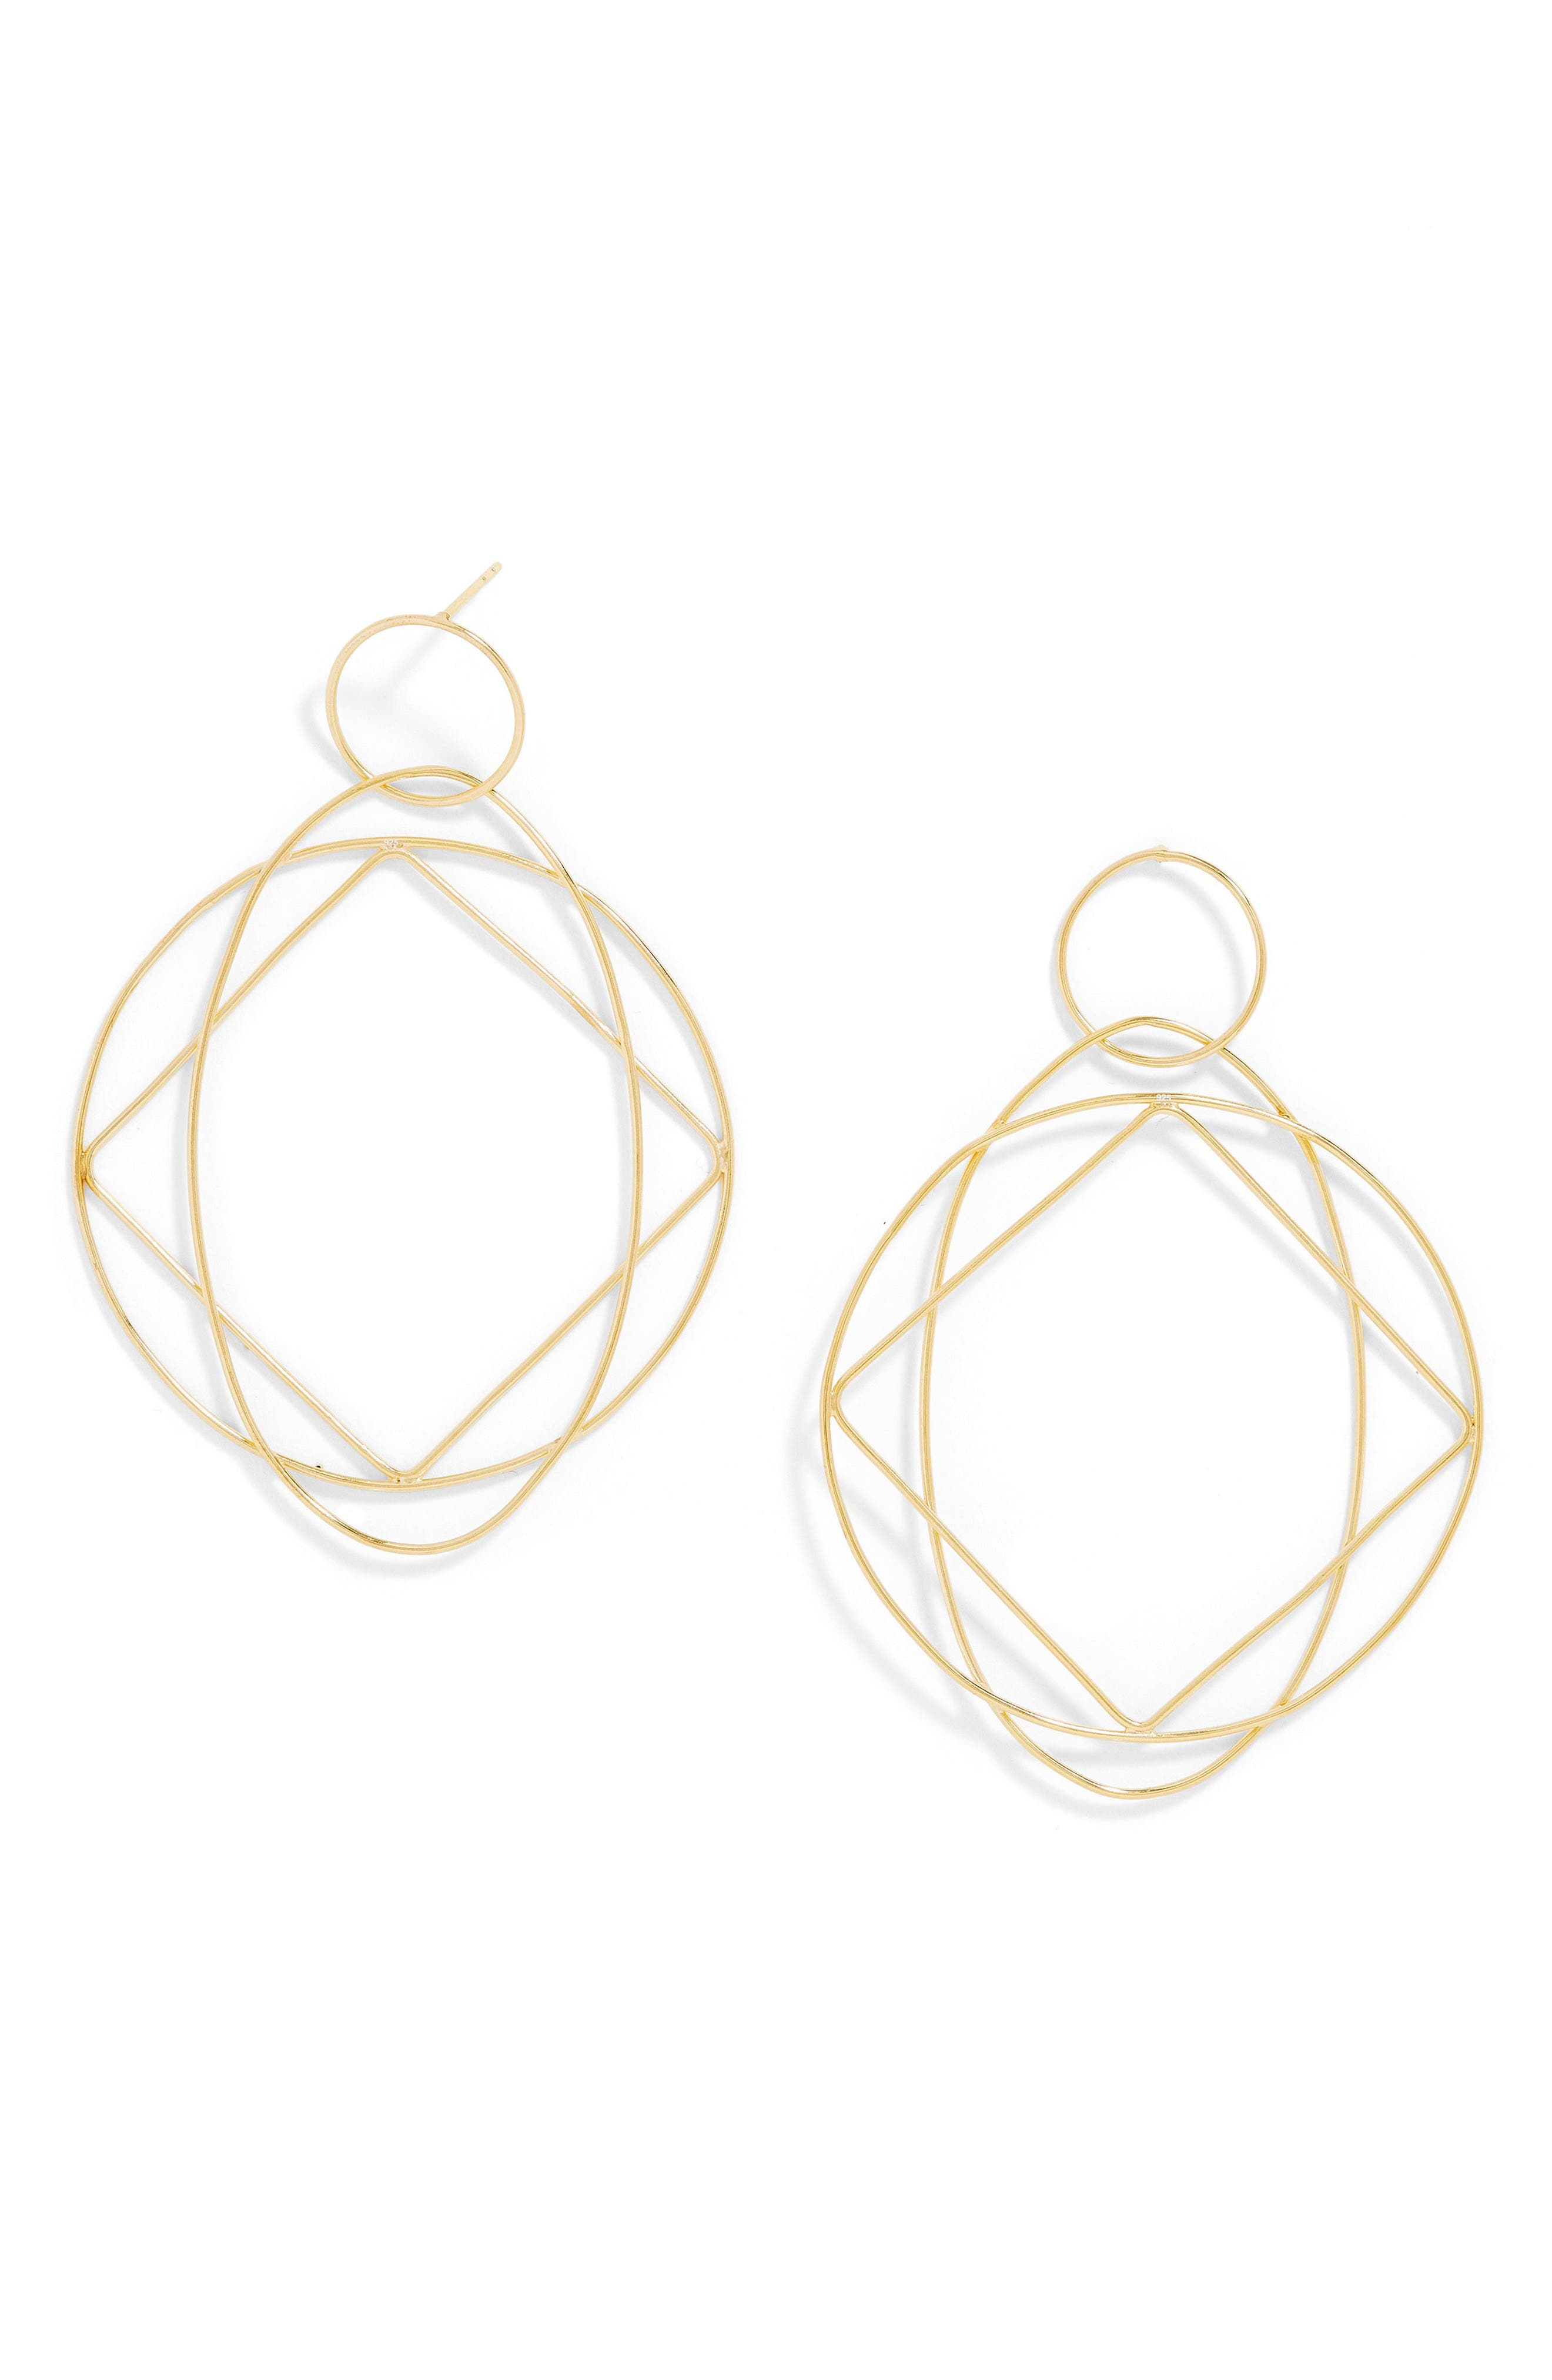 Quad Everyday Spinning Hoop Earrings,                             Main thumbnail 1, color,                             710